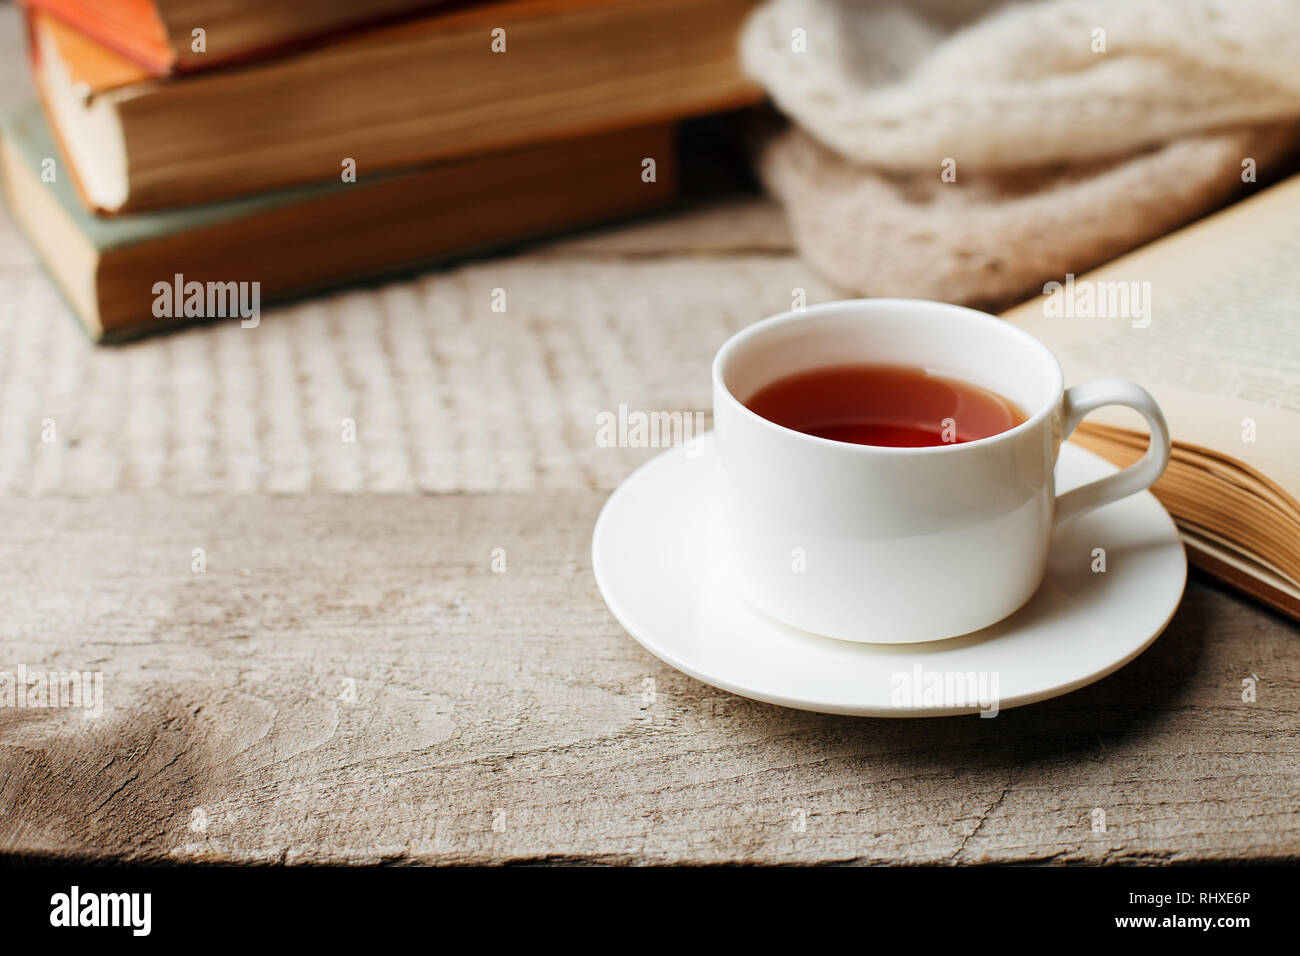 Valentines day concept with tea cup and books on wooden vintage background, cozy weekend, hygge leisure concept - Stock Image